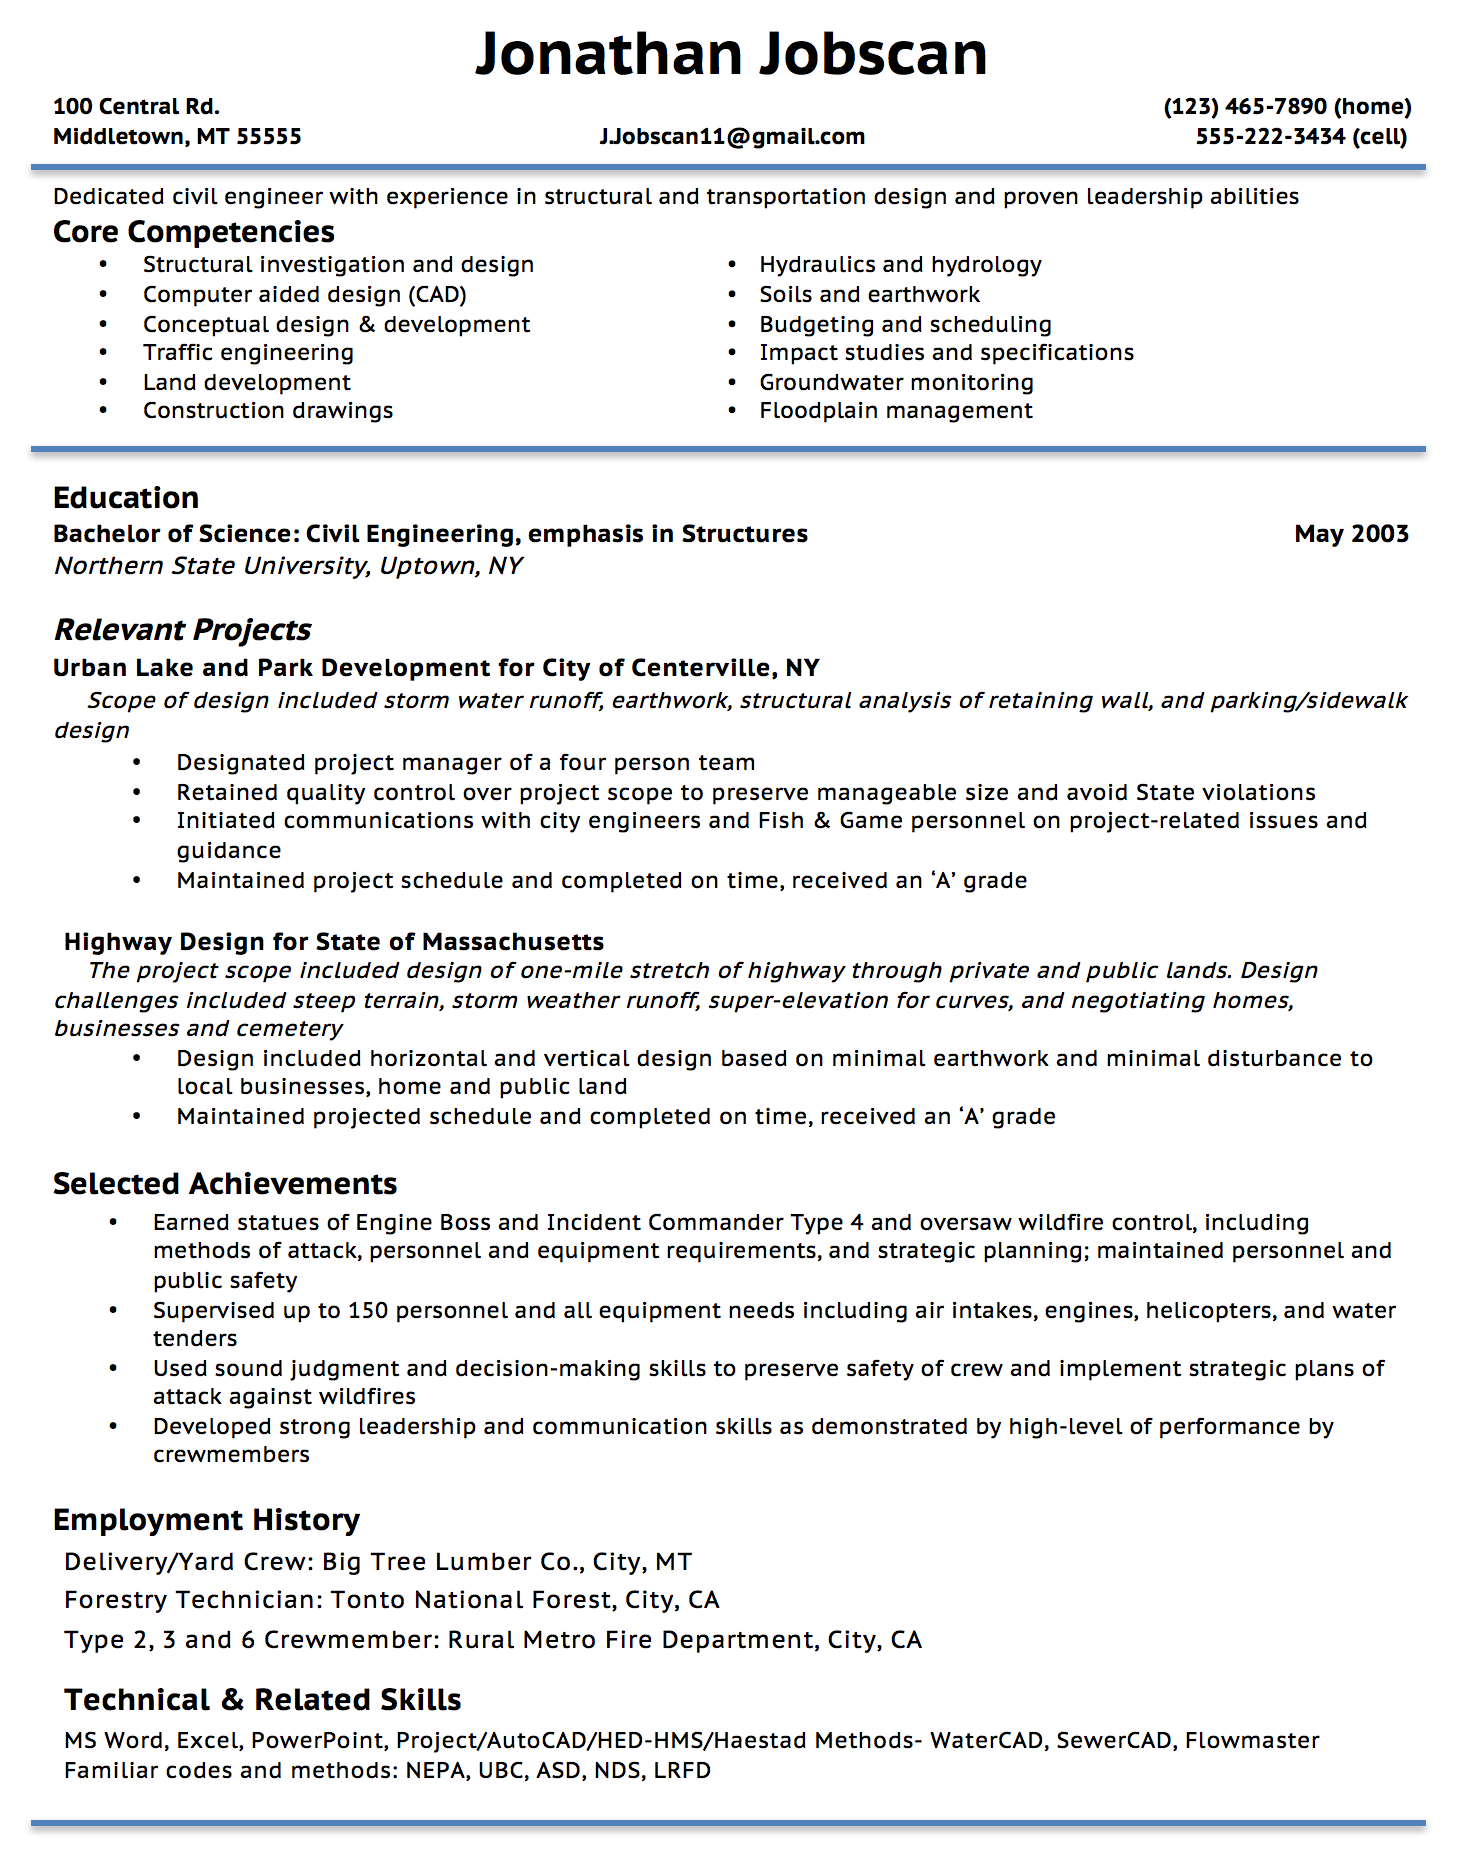 Opposenewapstandardsus  Fascinating Resume Writing Guide  Jobscan With Entrancing Example Of A Functional Resume Format With Appealing How To Do A Cover Letter For Resume Also Resume Qualifications Summary In Addition Job Resumes Examples And Examples Of Objectives On Resumes As Well As Resume Preparation Services Additionally Name Your Resume From Jobscanco With Opposenewapstandardsus  Entrancing Resume Writing Guide  Jobscan With Appealing Example Of A Functional Resume Format And Fascinating How To Do A Cover Letter For Resume Also Resume Qualifications Summary In Addition Job Resumes Examples From Jobscanco